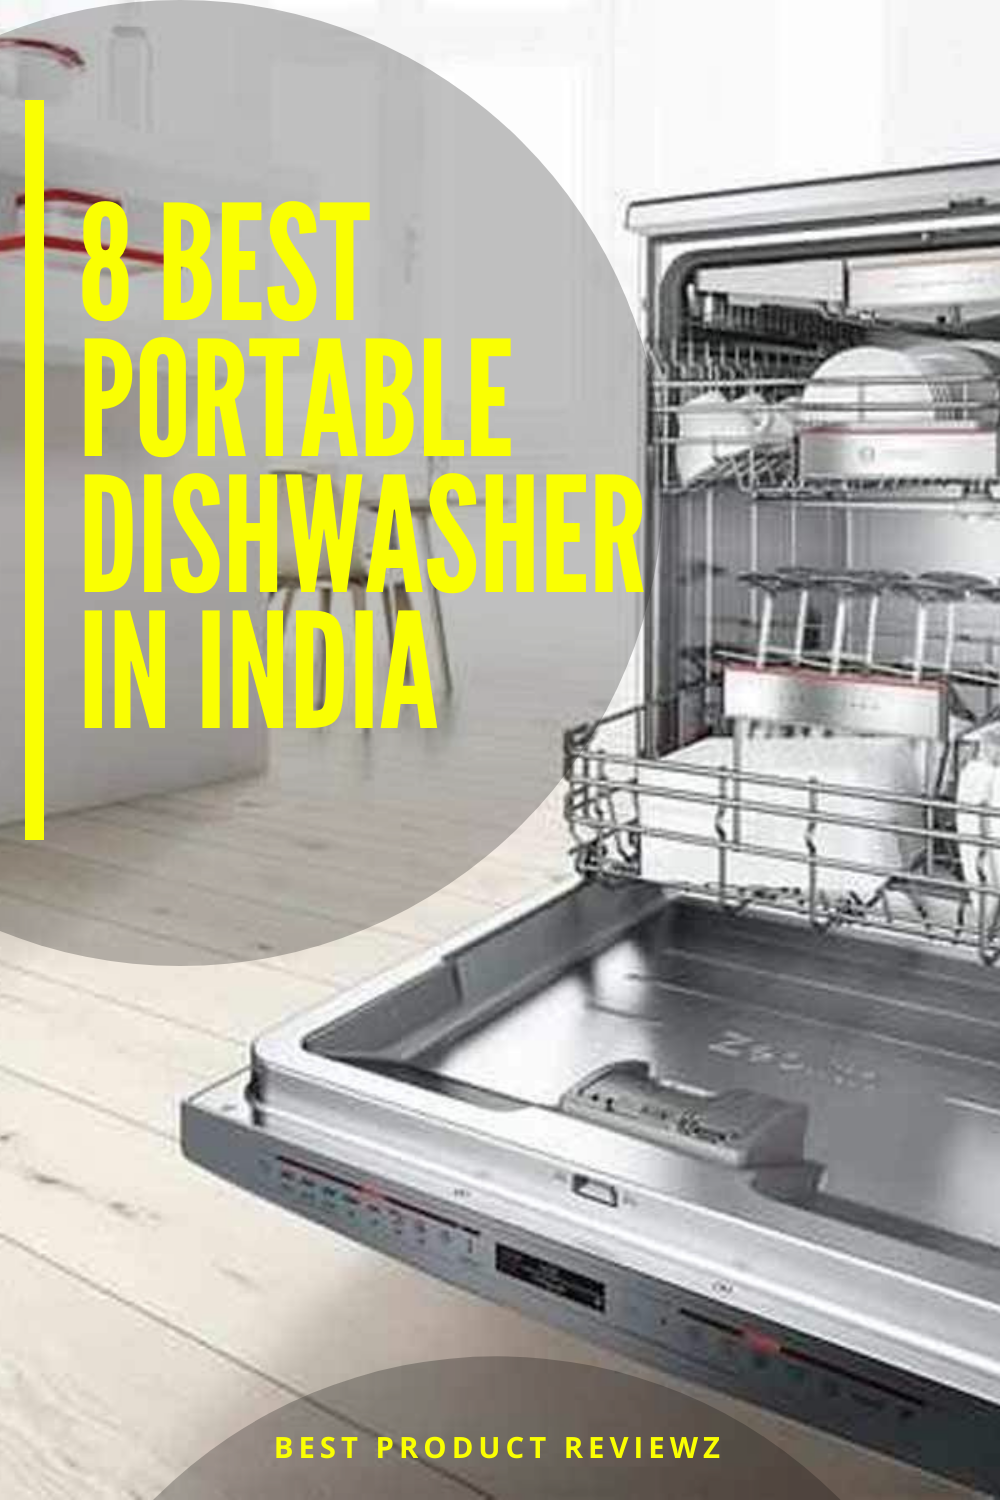 8 Best Portable Dishwasher In India With Buying Guide In 2020 Best Dishwasher Portable Dishwasher Dishwasher